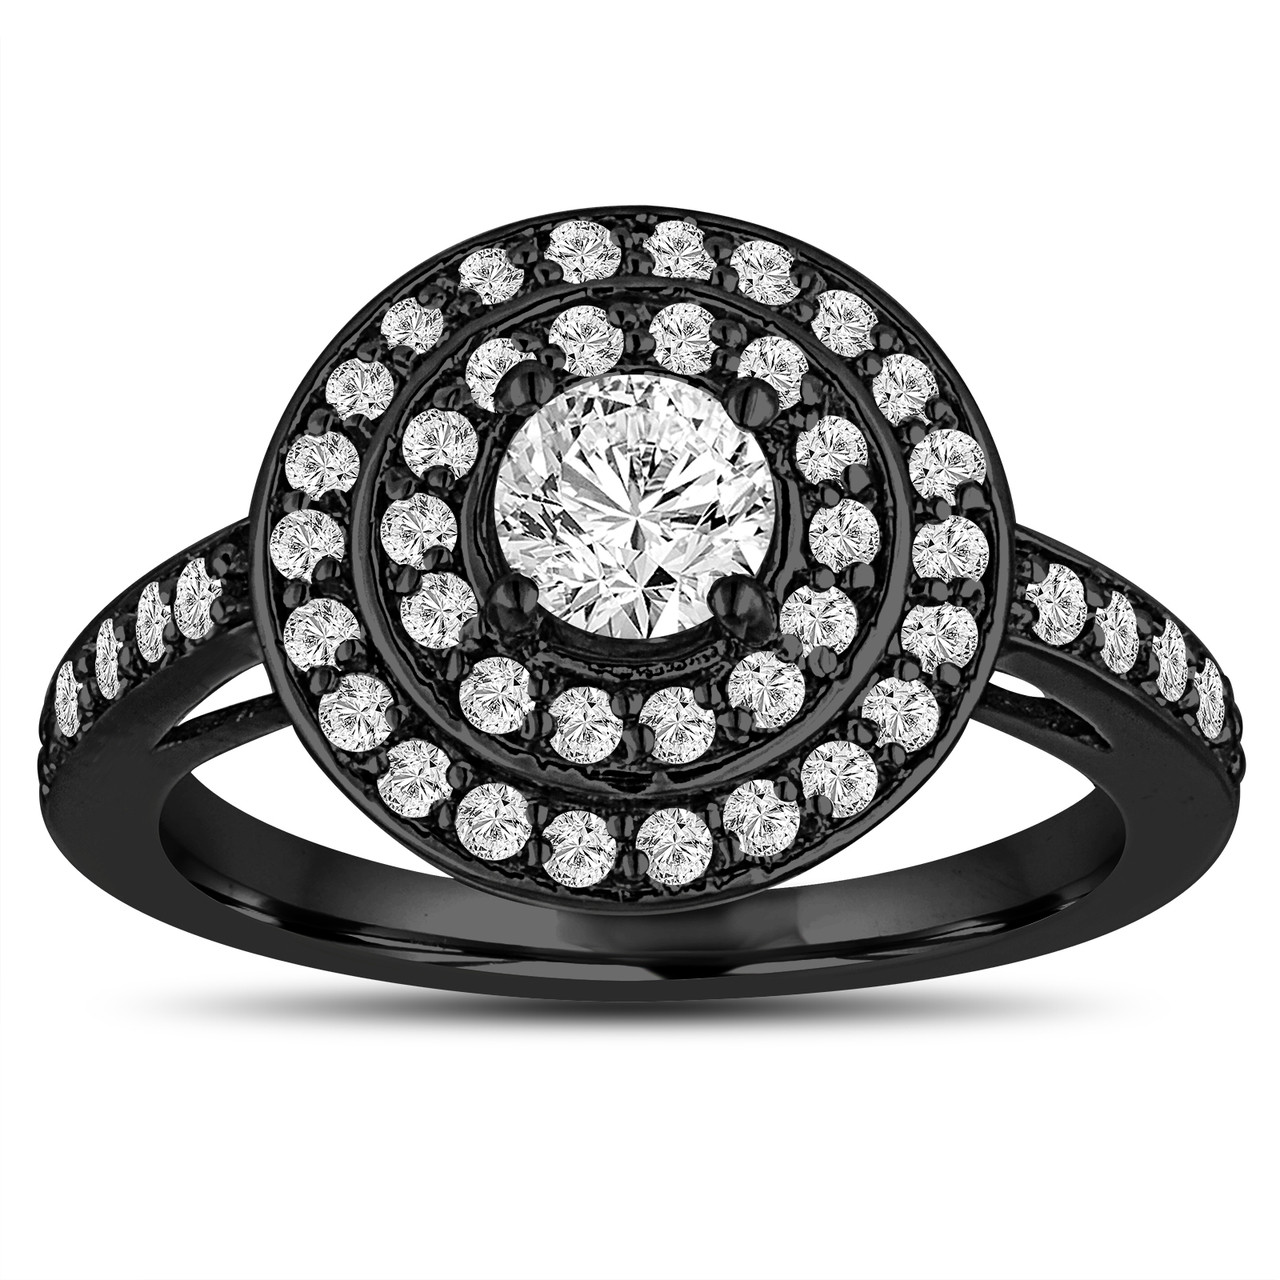 Gia Certified Diamond Engagement Ring 14k Black Gold Vintage Style 107  Carat Double Halo Pave Handmade Certified $2,95000